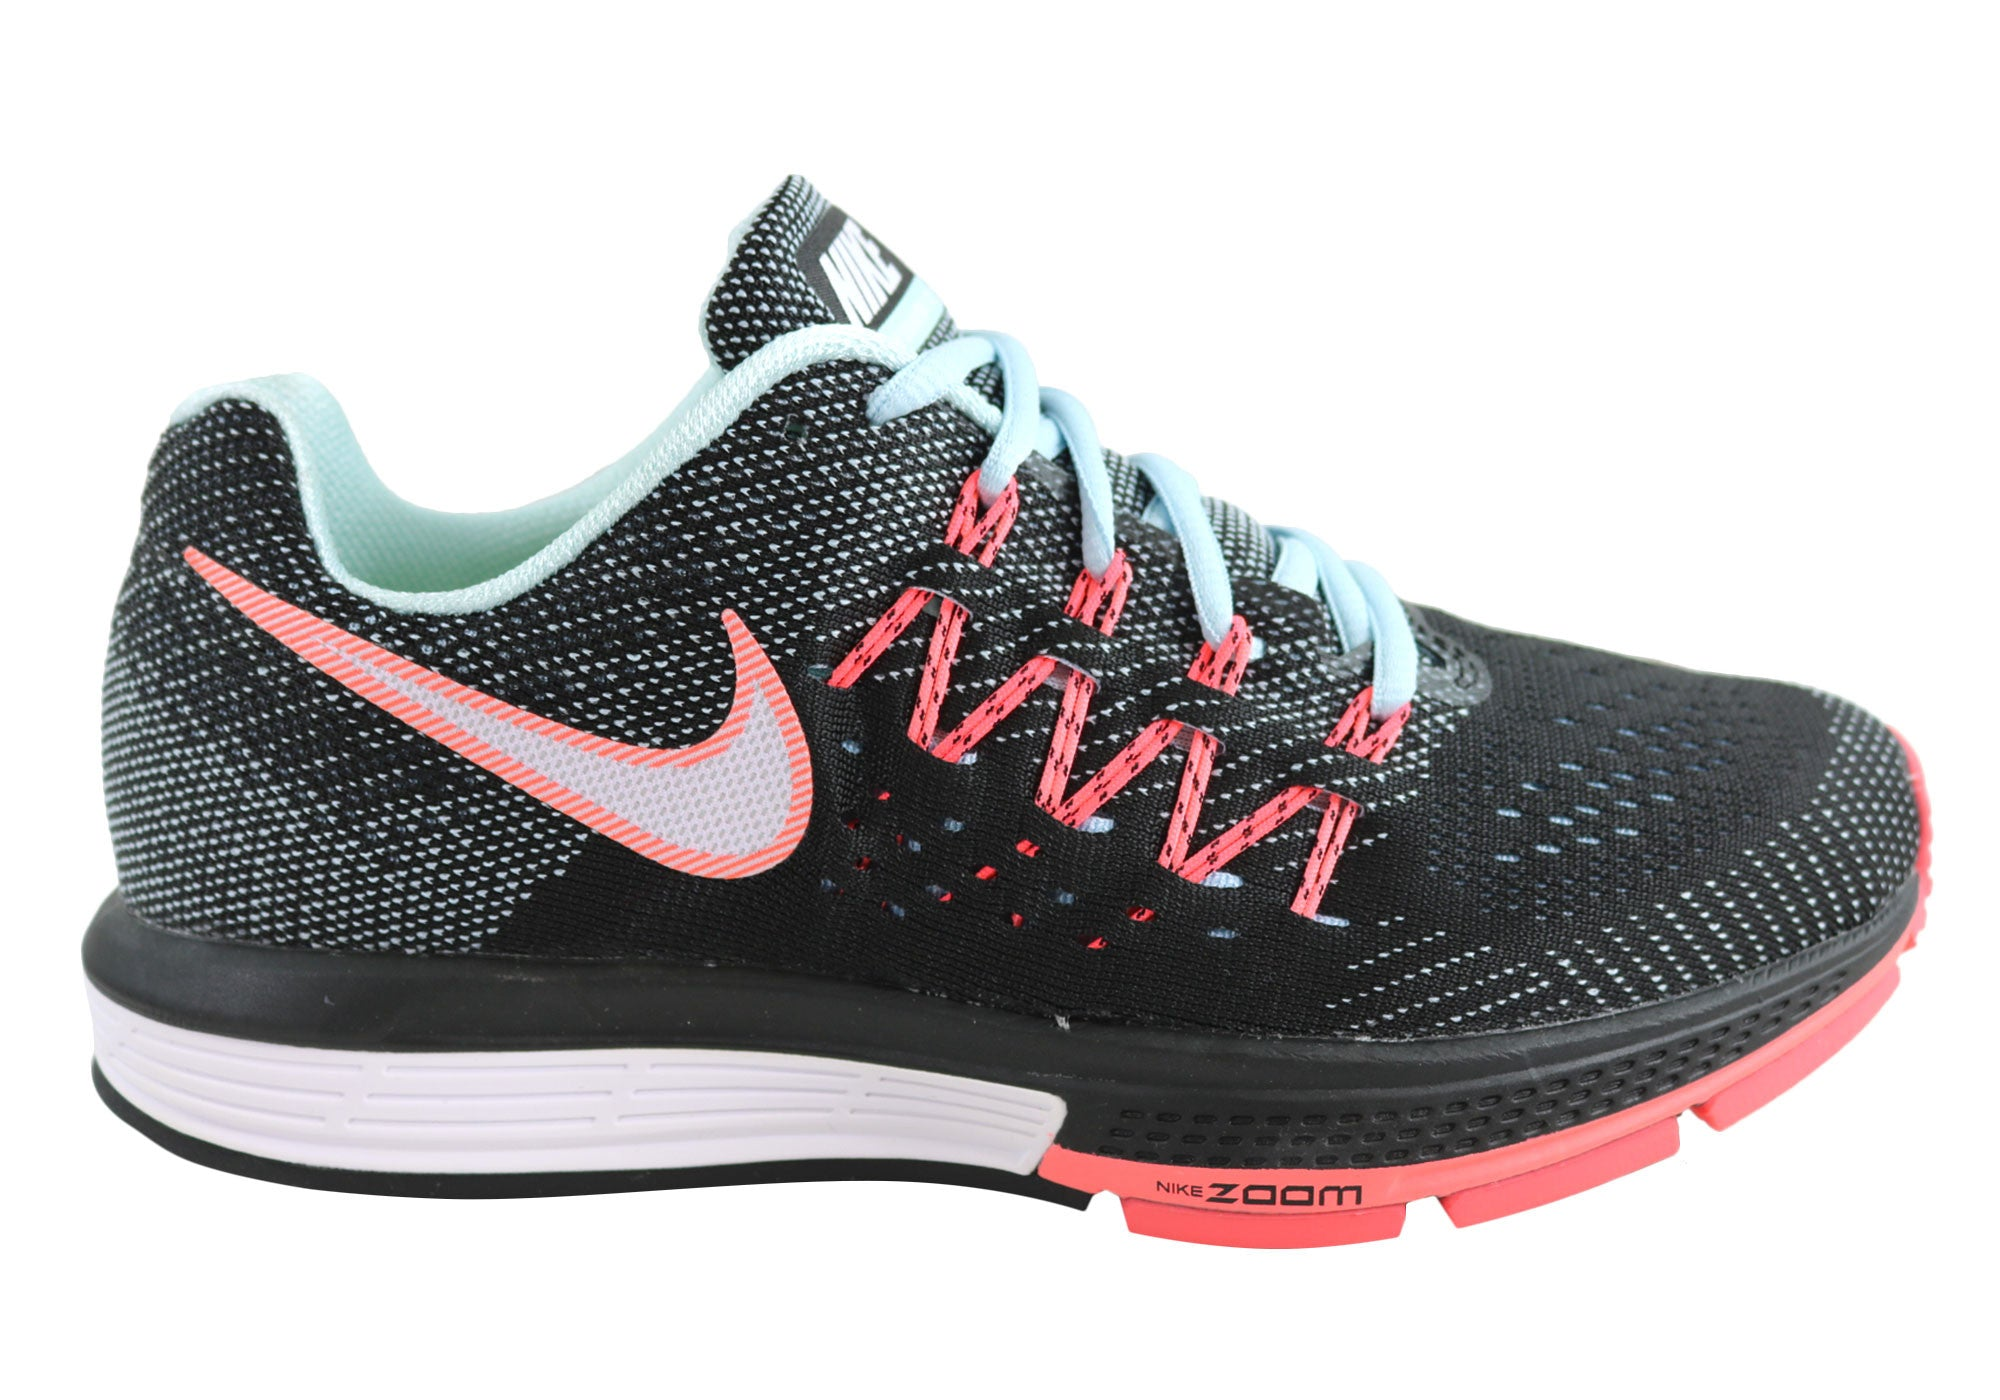 13d0bd1e1c01 Nike Womens Air Zoom Vomero 10 (Wide Fitting) Comfortable Sport ...